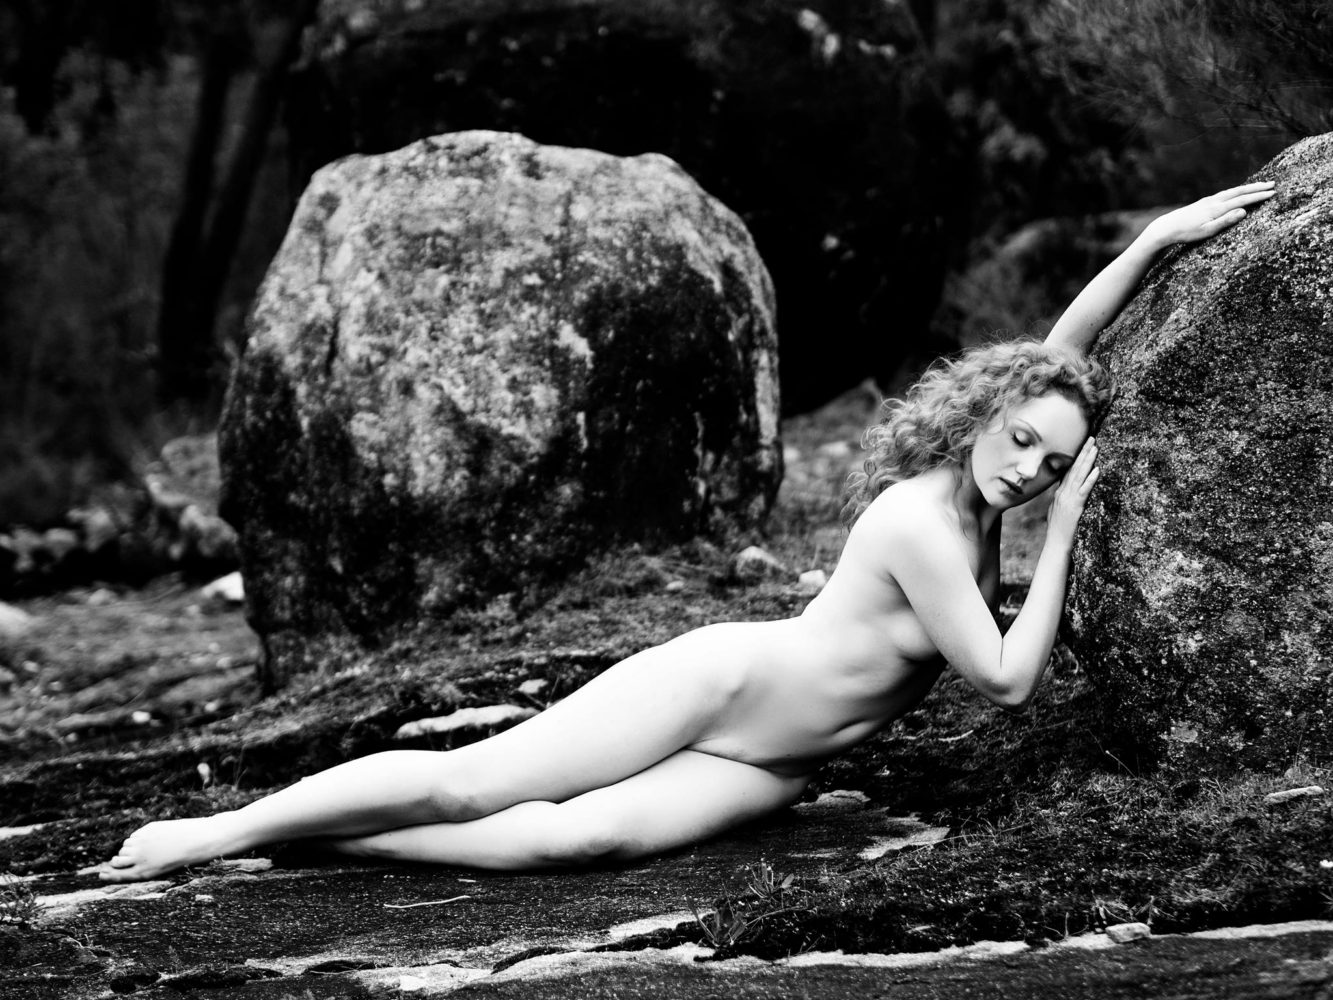 Nude art model Ivory Flame in nature